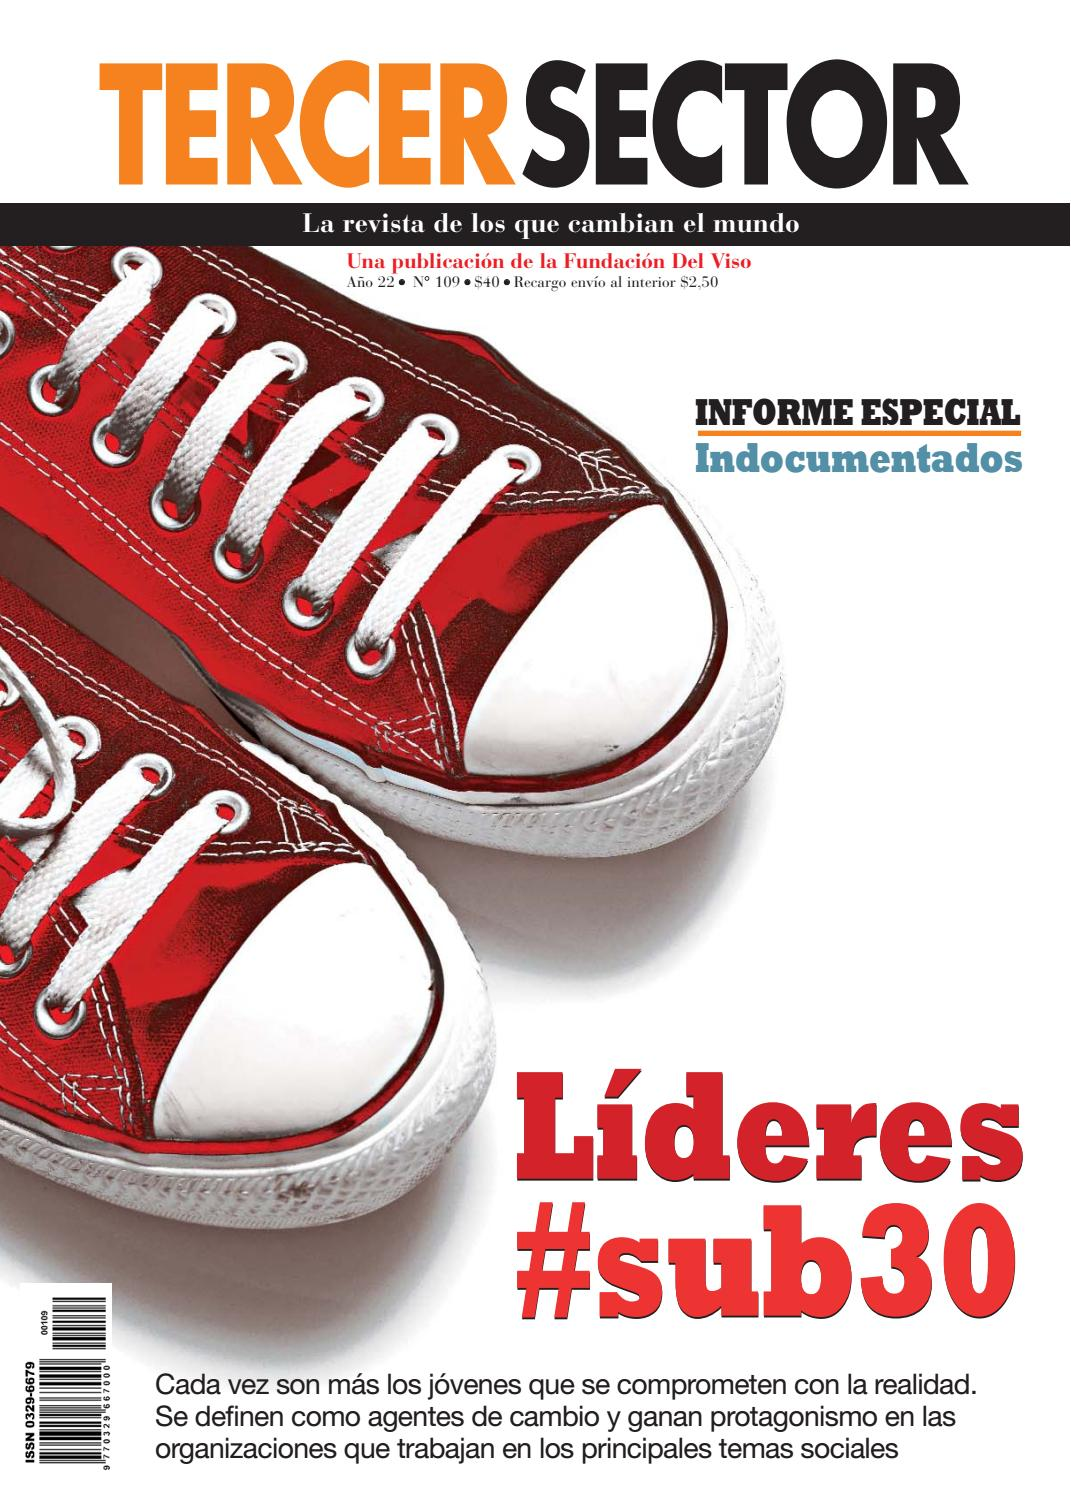 REVISTA TERCER SECTOR #109 by Tercer Sector - issuu